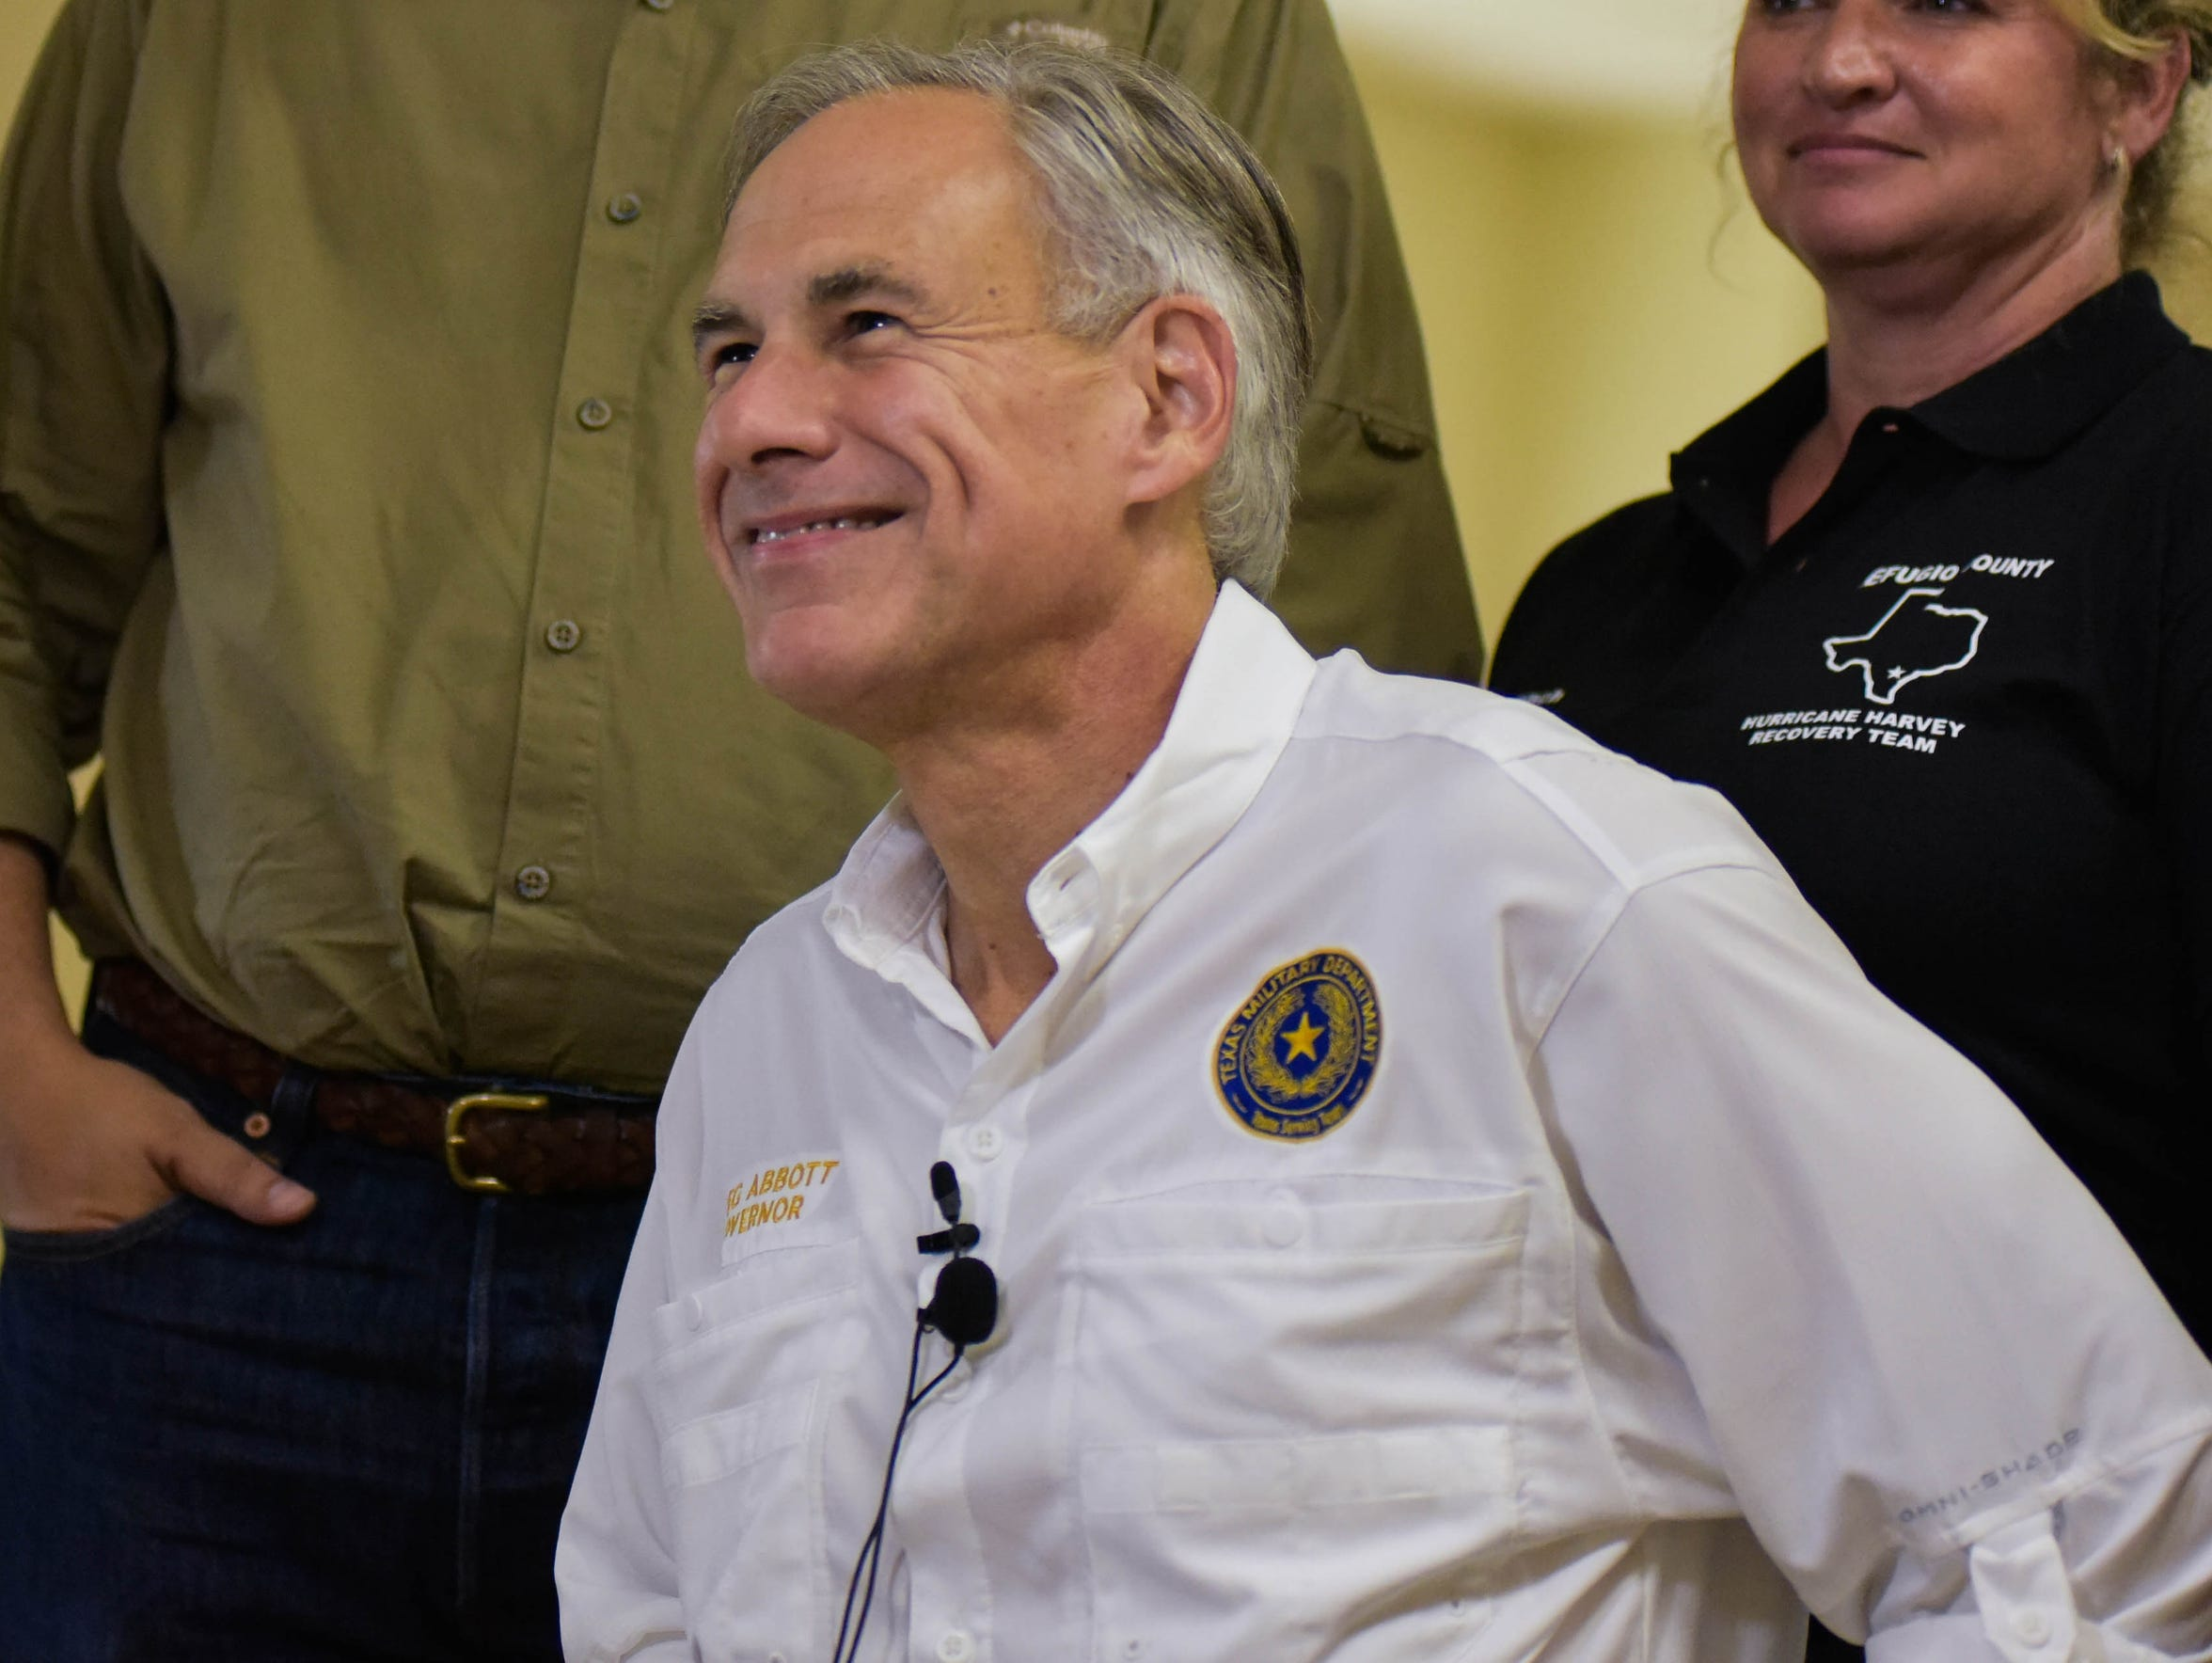 Gov. Greg Abbott will face the winner of the May 22 Democratic runoff in the Nov. 6 general election